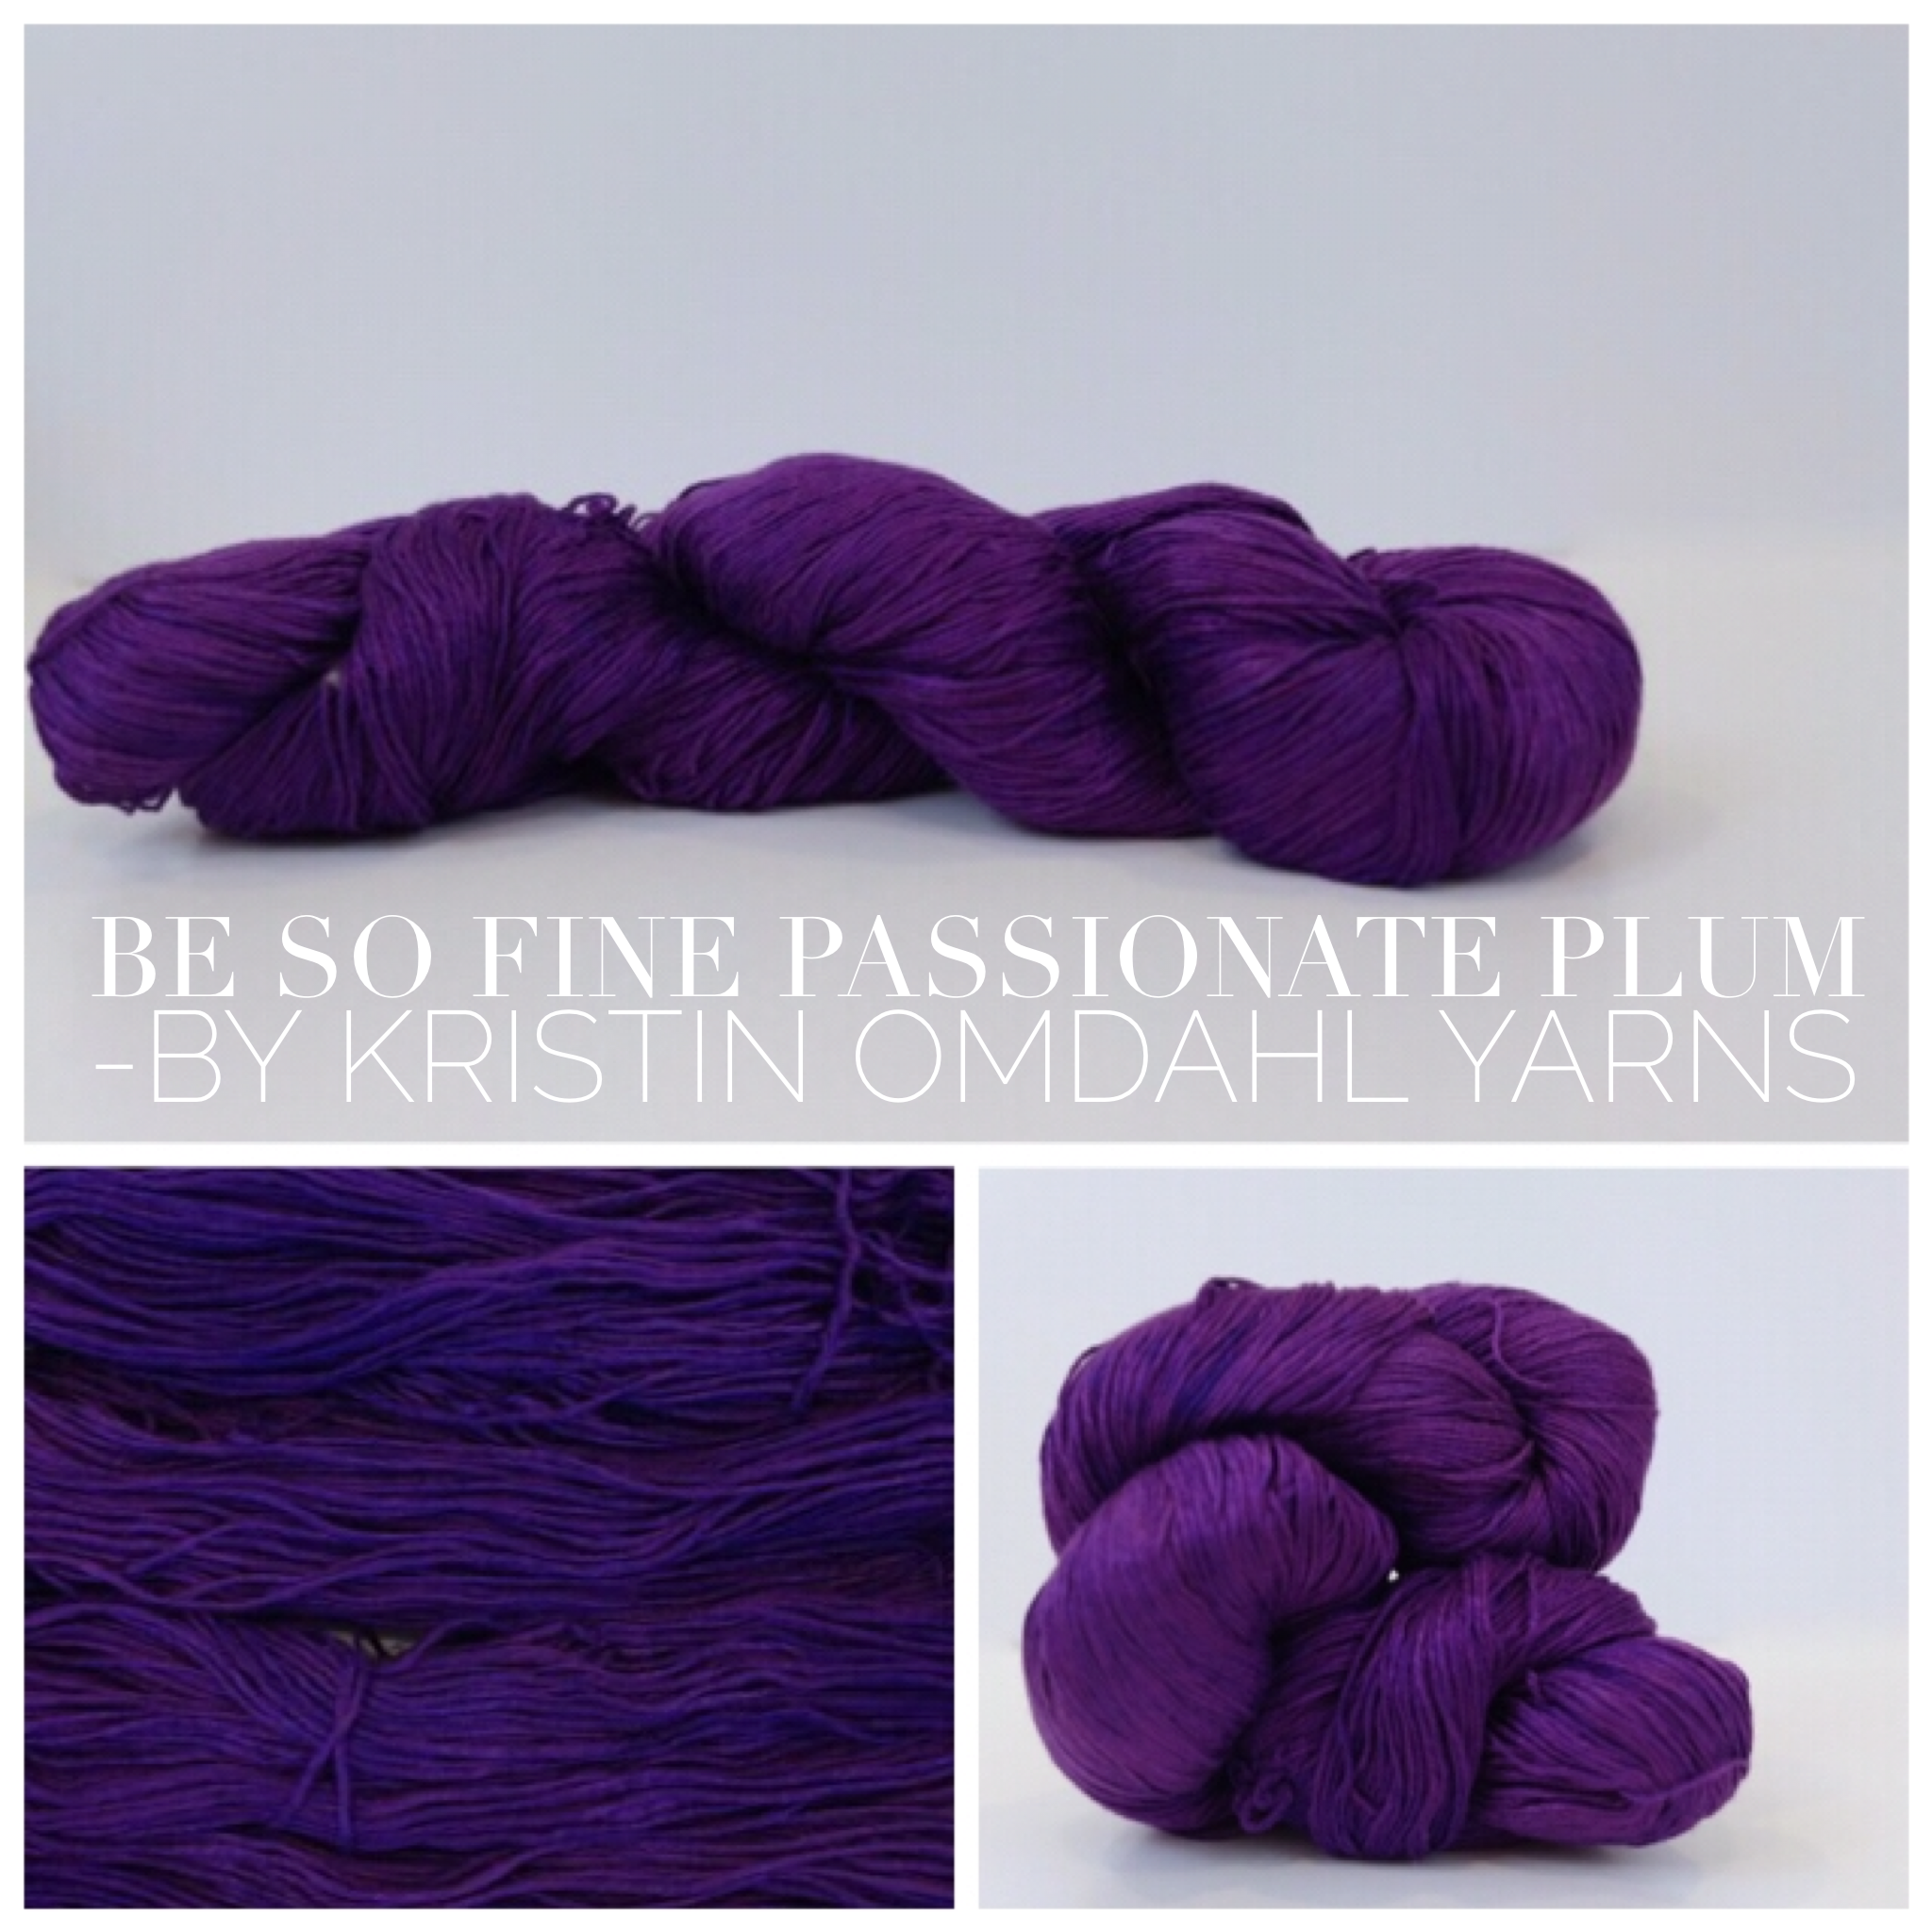 bsf passionate plum collage.PNG